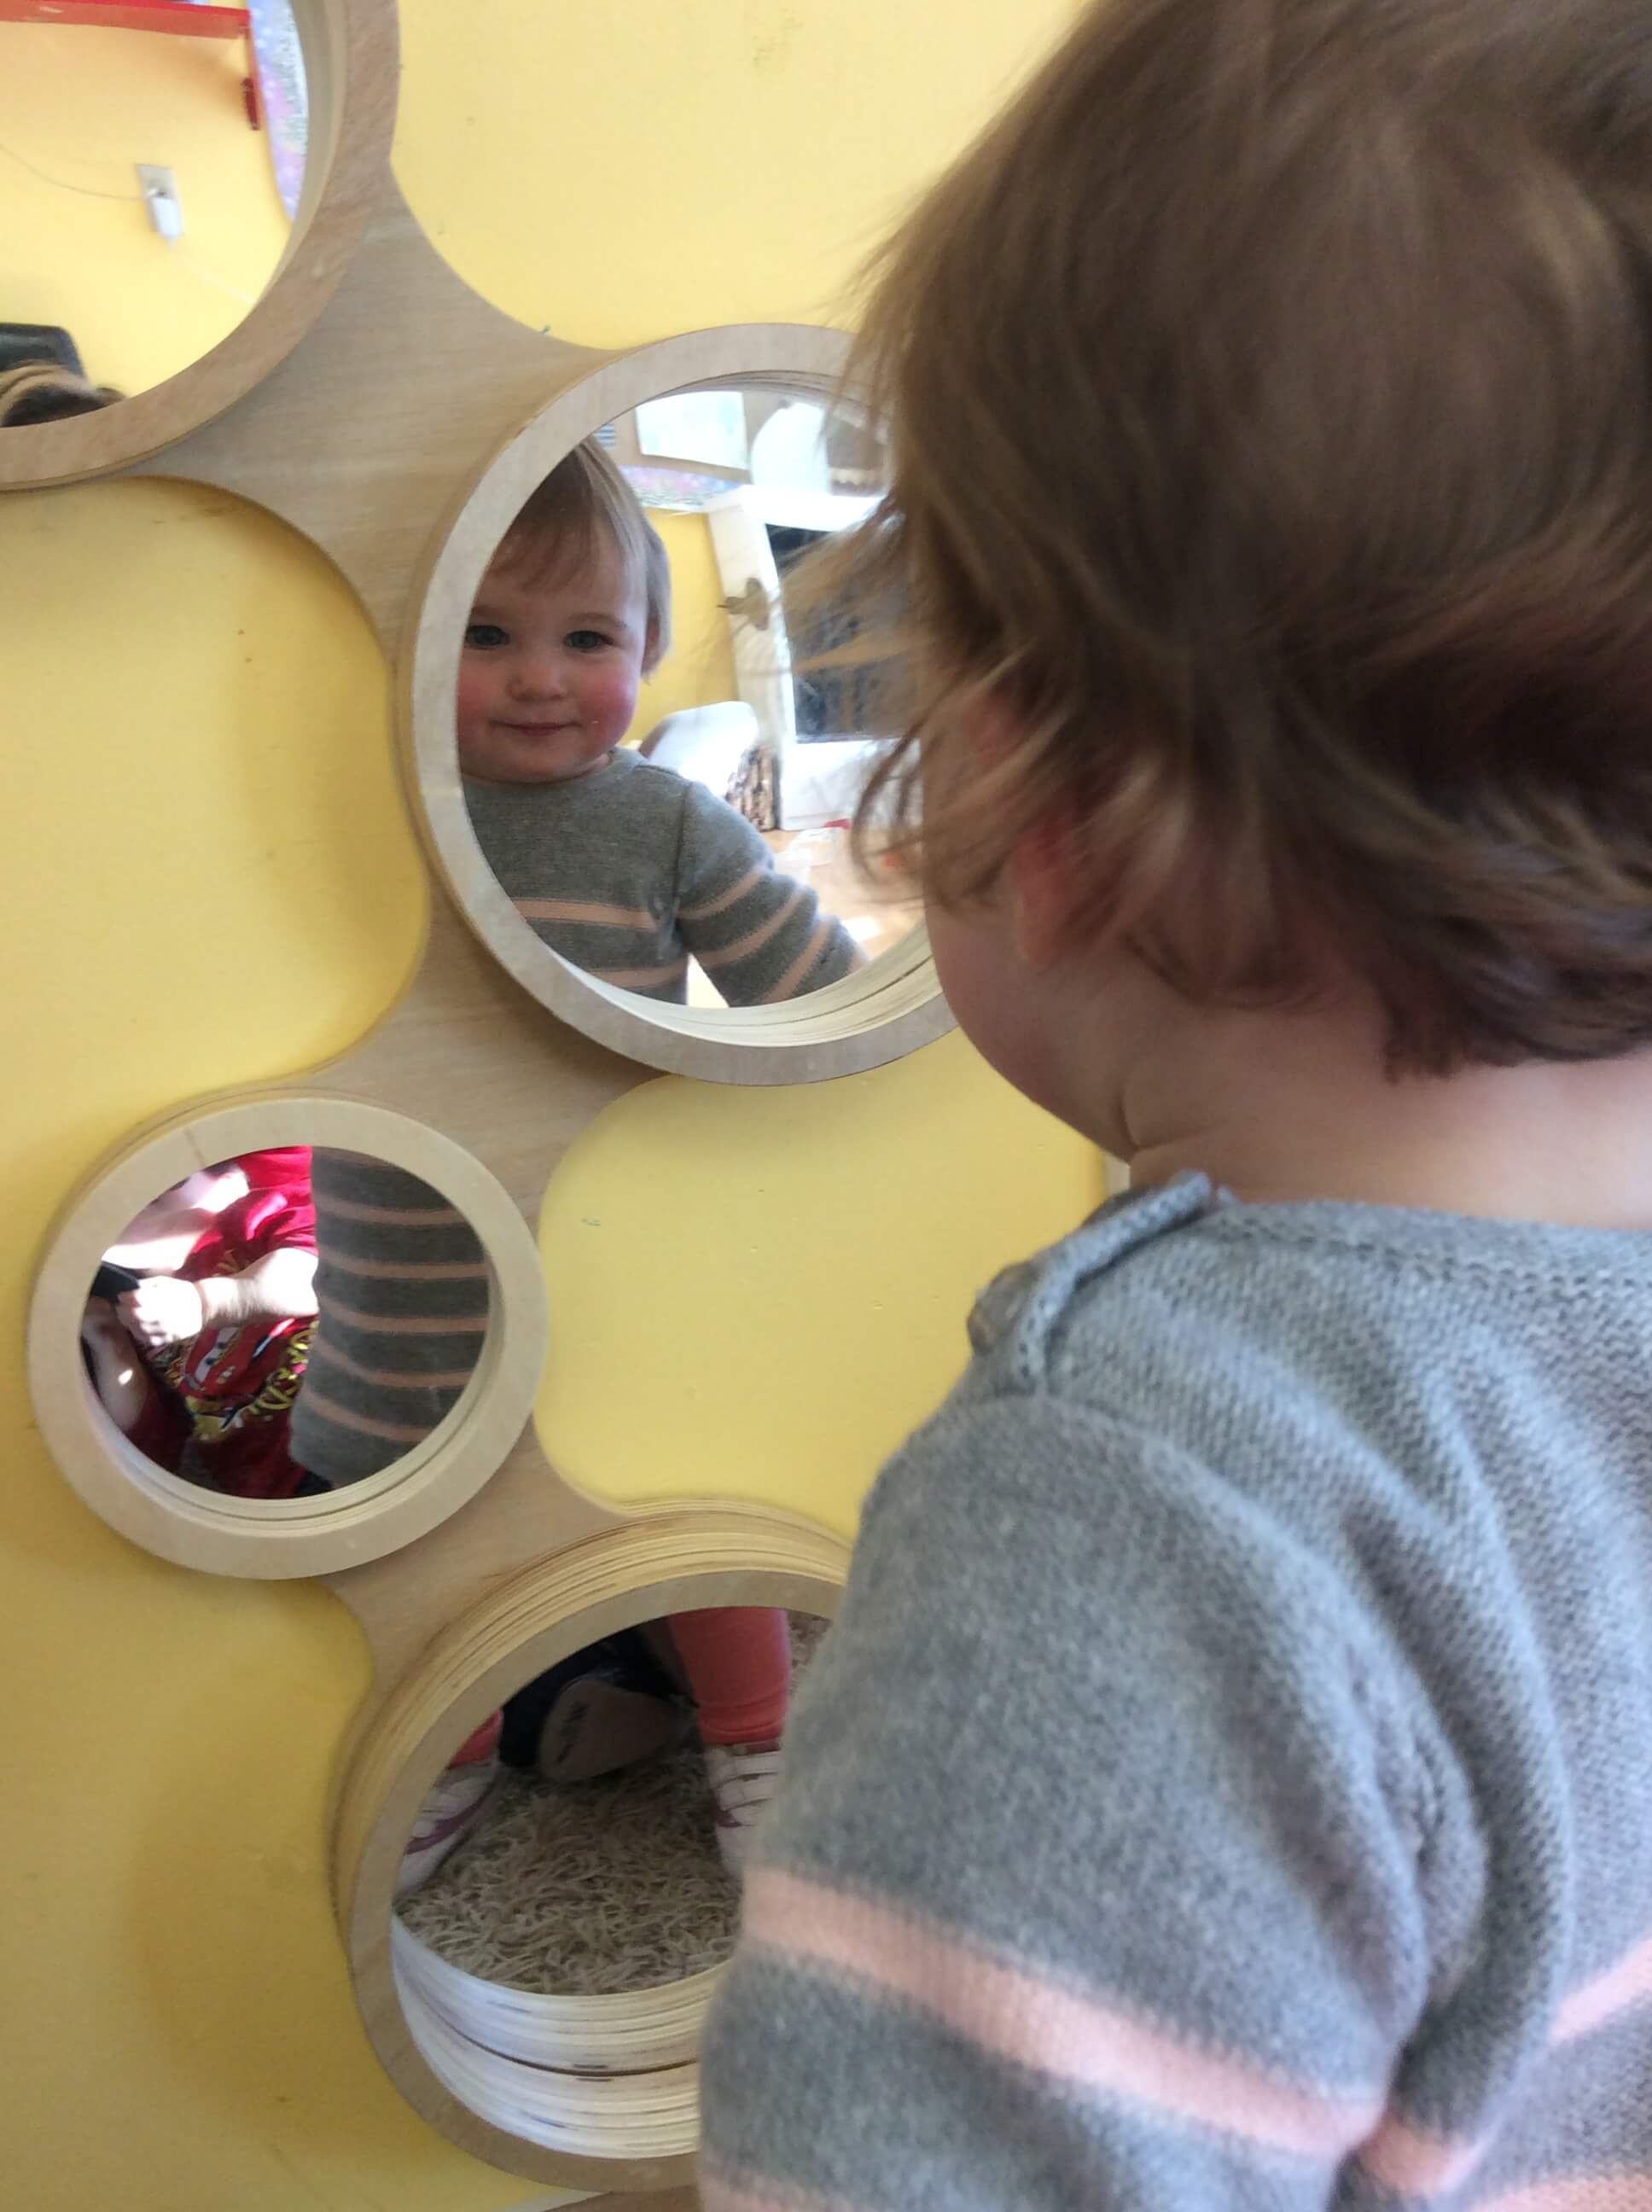 infant looking at her reflection